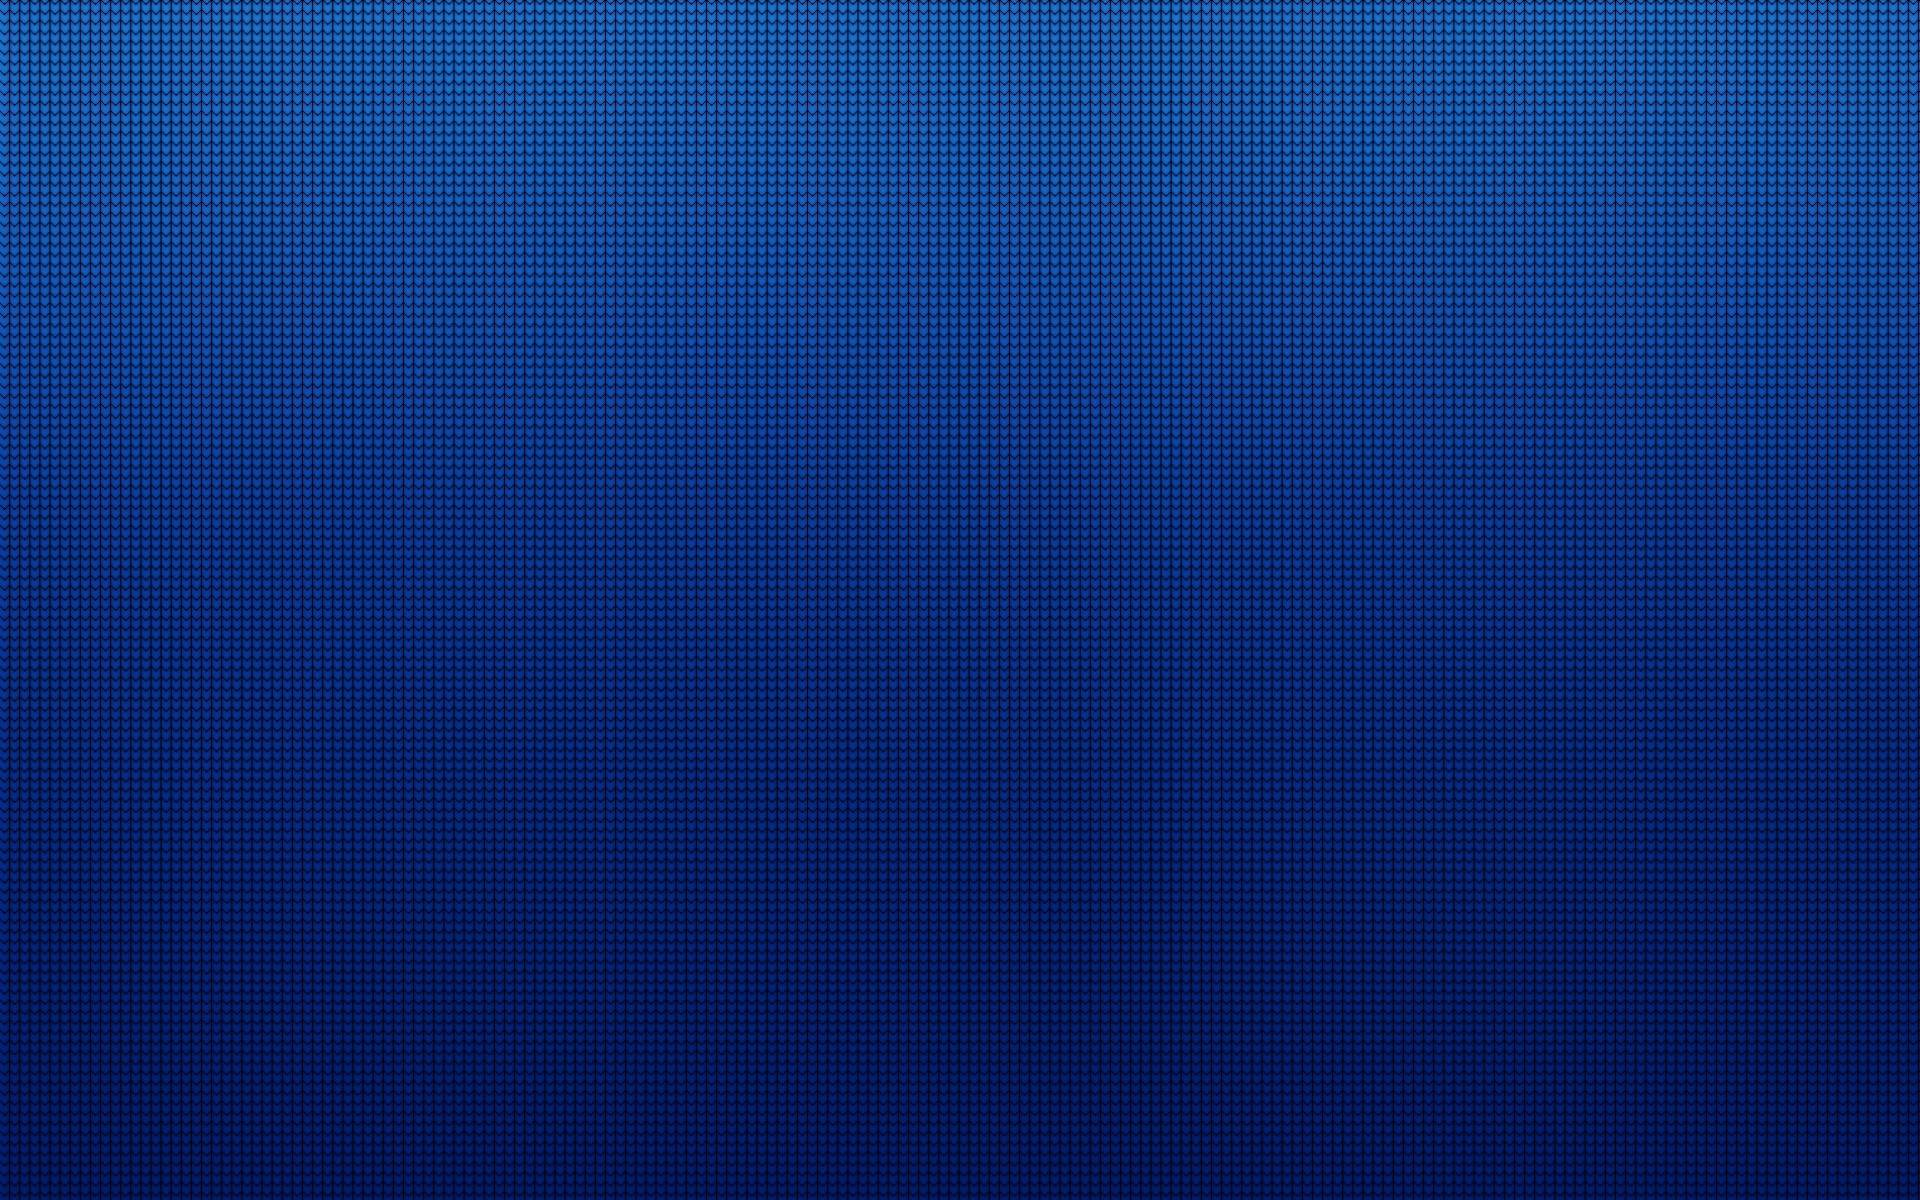 plain blue background - photo #10